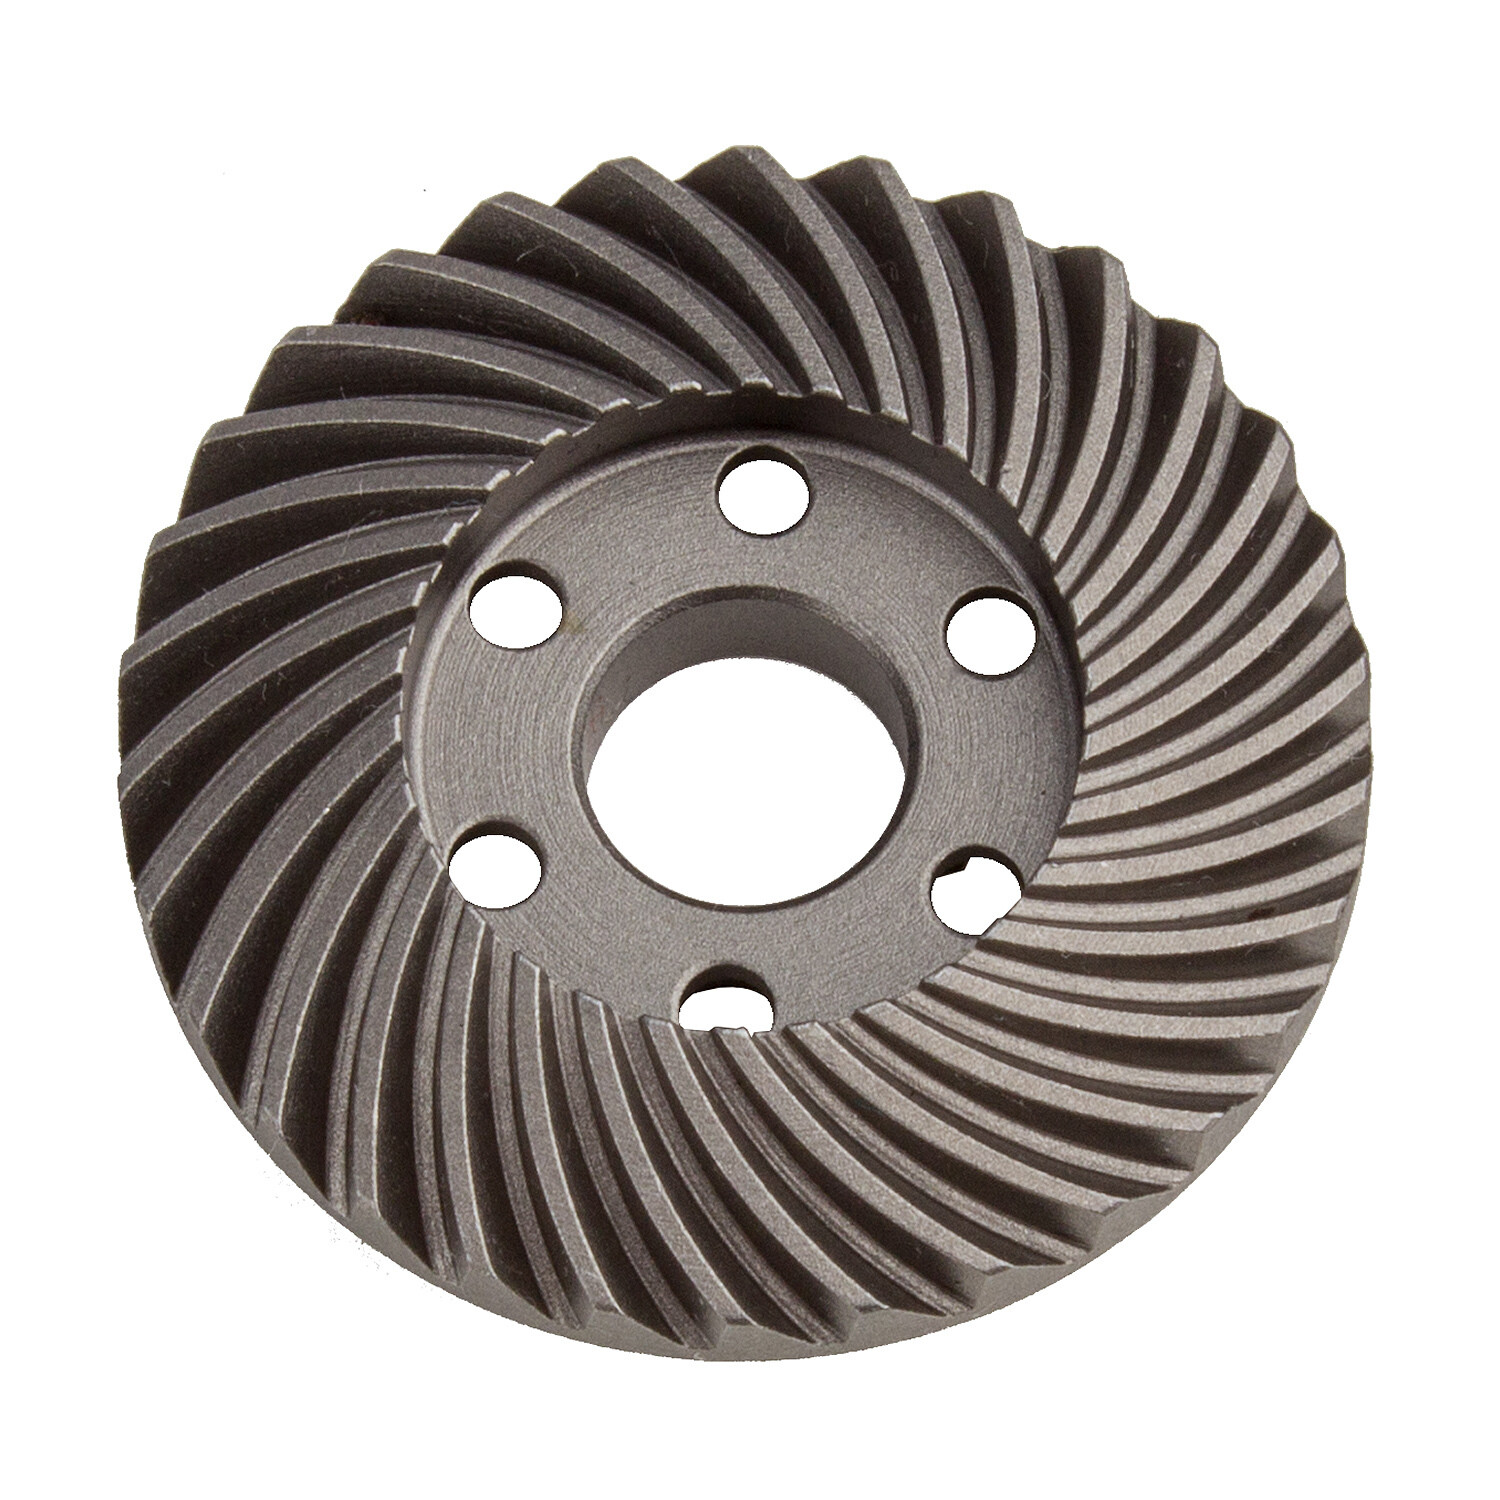 Team Associated Factory Team Machined Steel Ring Gear, 30 Tooth, for Enduro Trucks